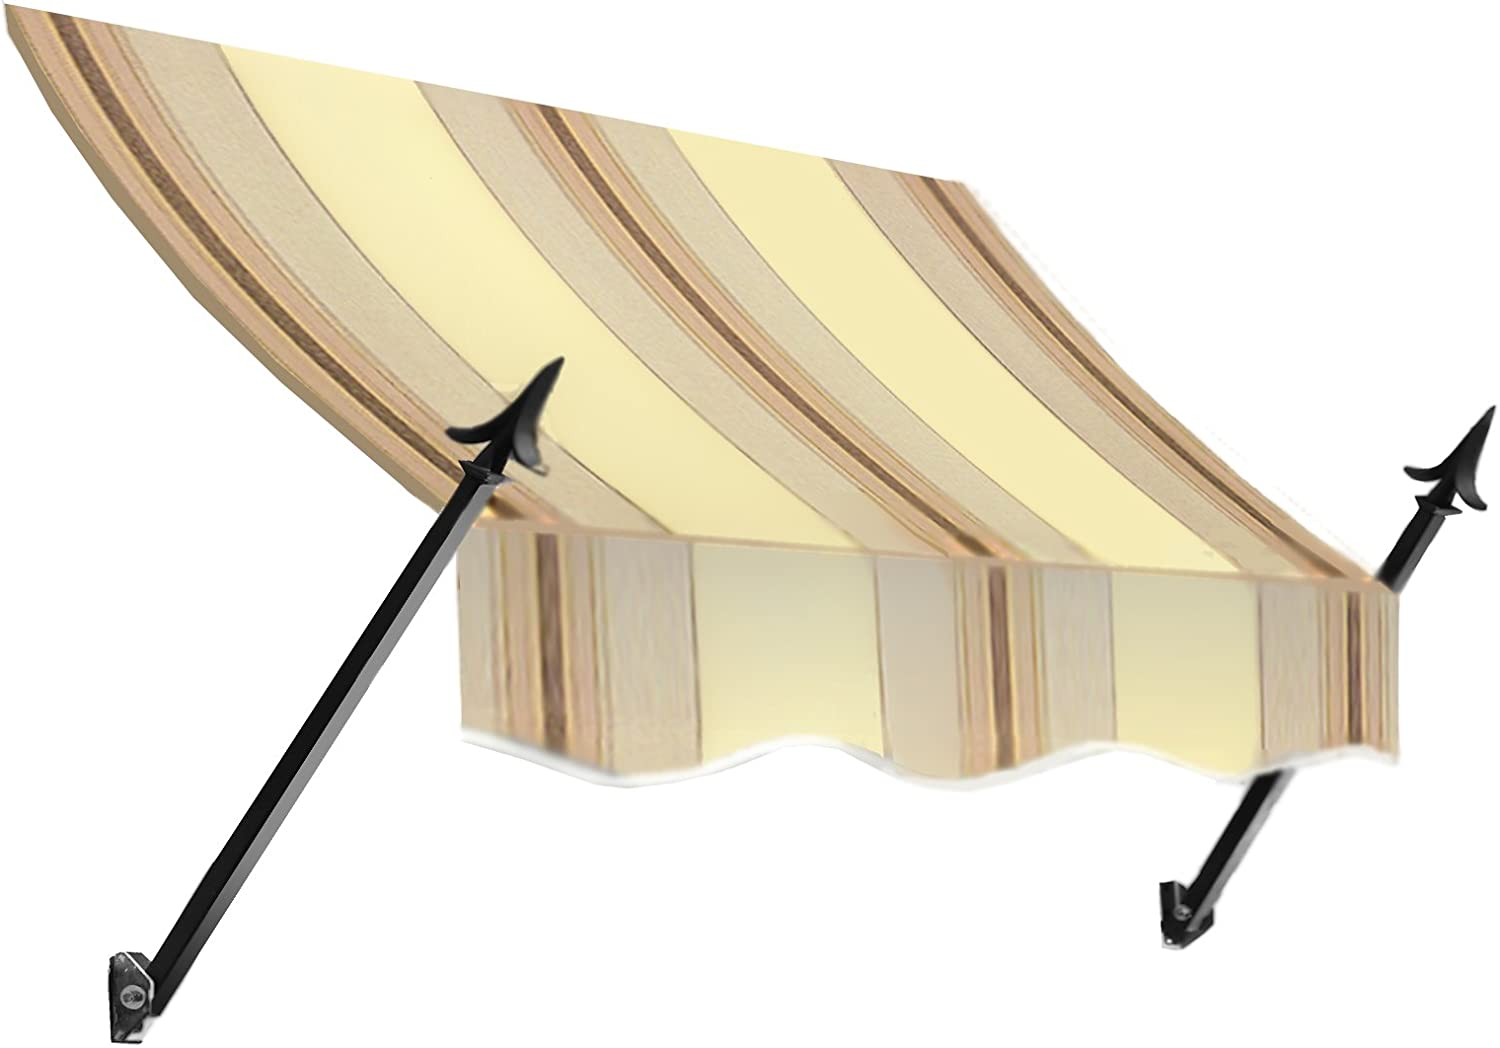 Awntech 3-Feet New Orleans Awning, 31-Inch Height by 16-Inch Diameter, Gray Cream Black